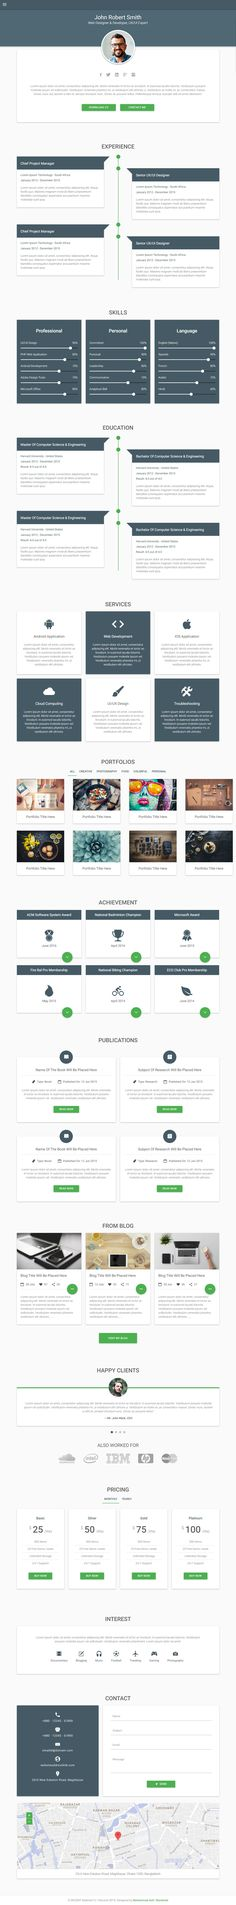 Decent is Premium Responsive Retina HTML5 Template. Material Design. Bootstrap 3. One Page. #MaterializeCSS. If you like this #CV Template visit our handpicked list of best #Resume and CV Website Templates at: http://www.responsivemiracle.com/best-resume-and-cv-website-template/